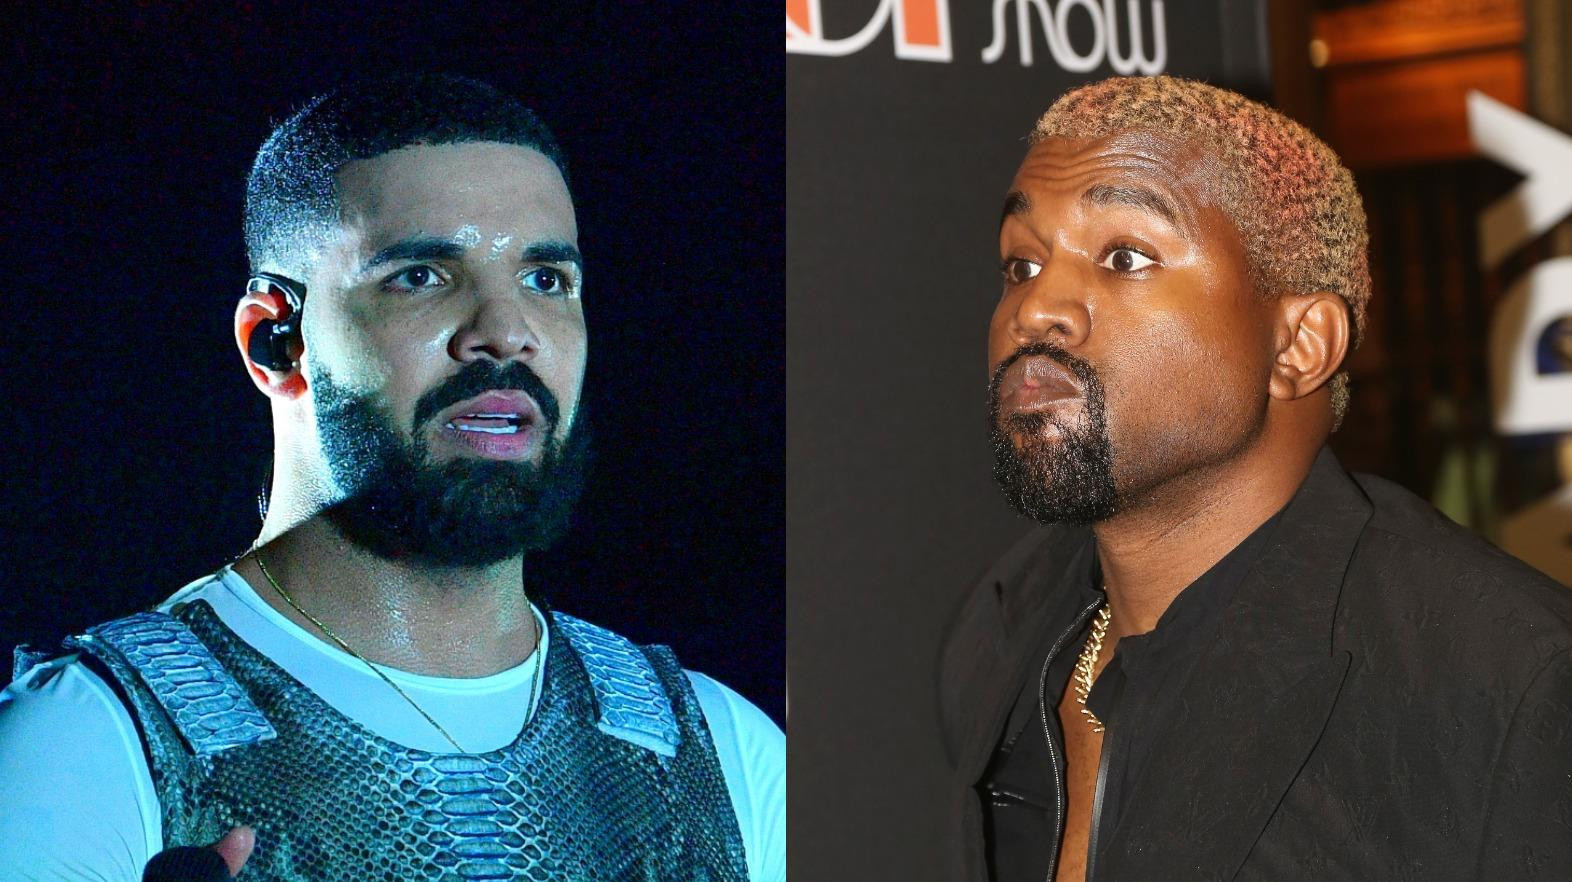 Kanye West Calls Out Drake After Realizing He Follows Kim Kardashian On Social Media - Reignites Their Feud!